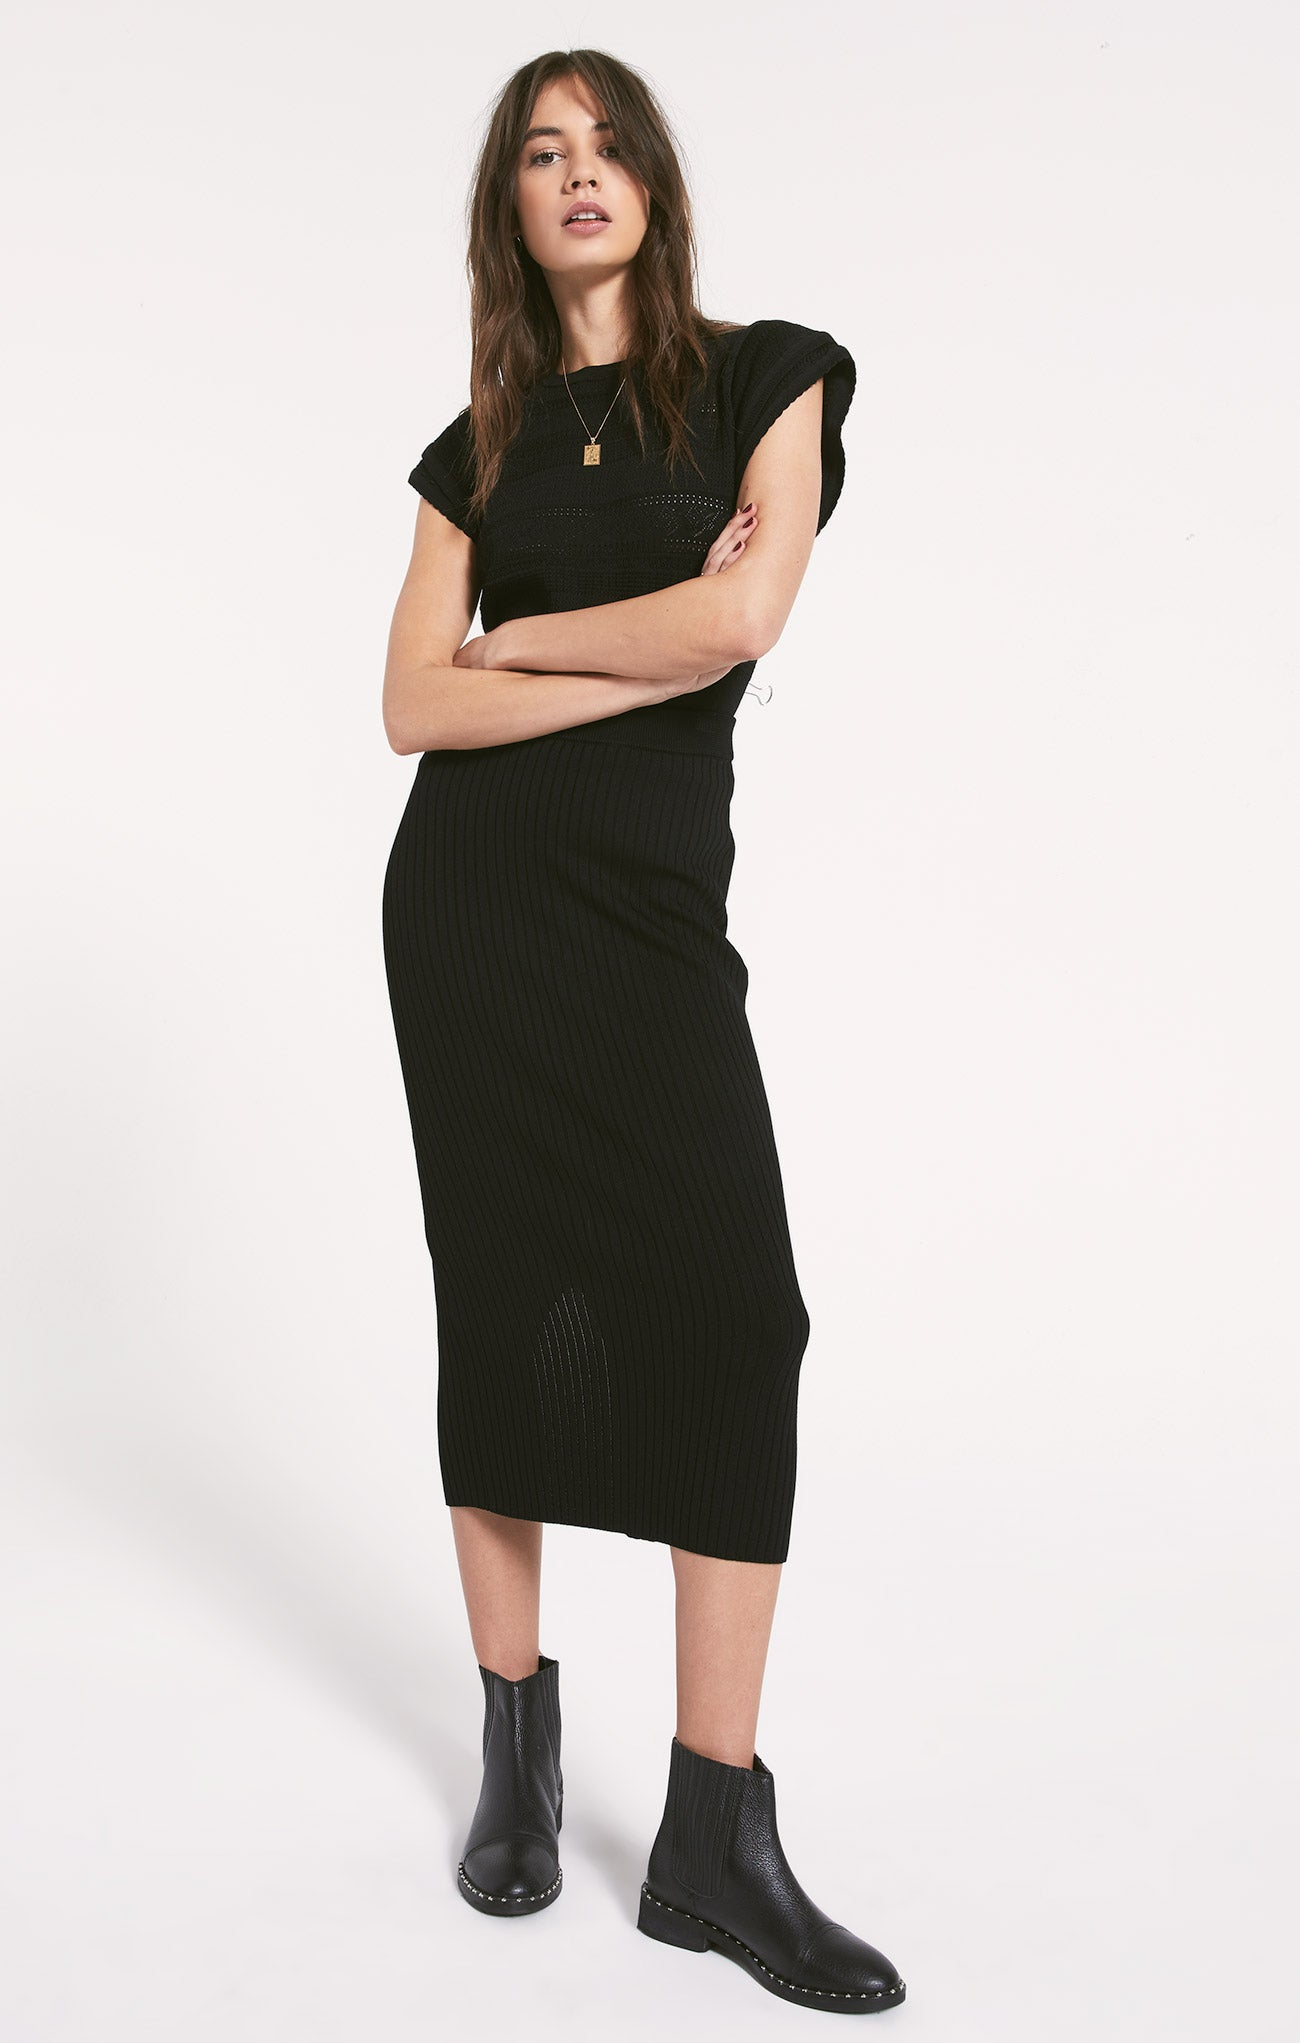 Skirts Les Halles Skirt by Rag Poets Les Halles Skirt by Rag Poets